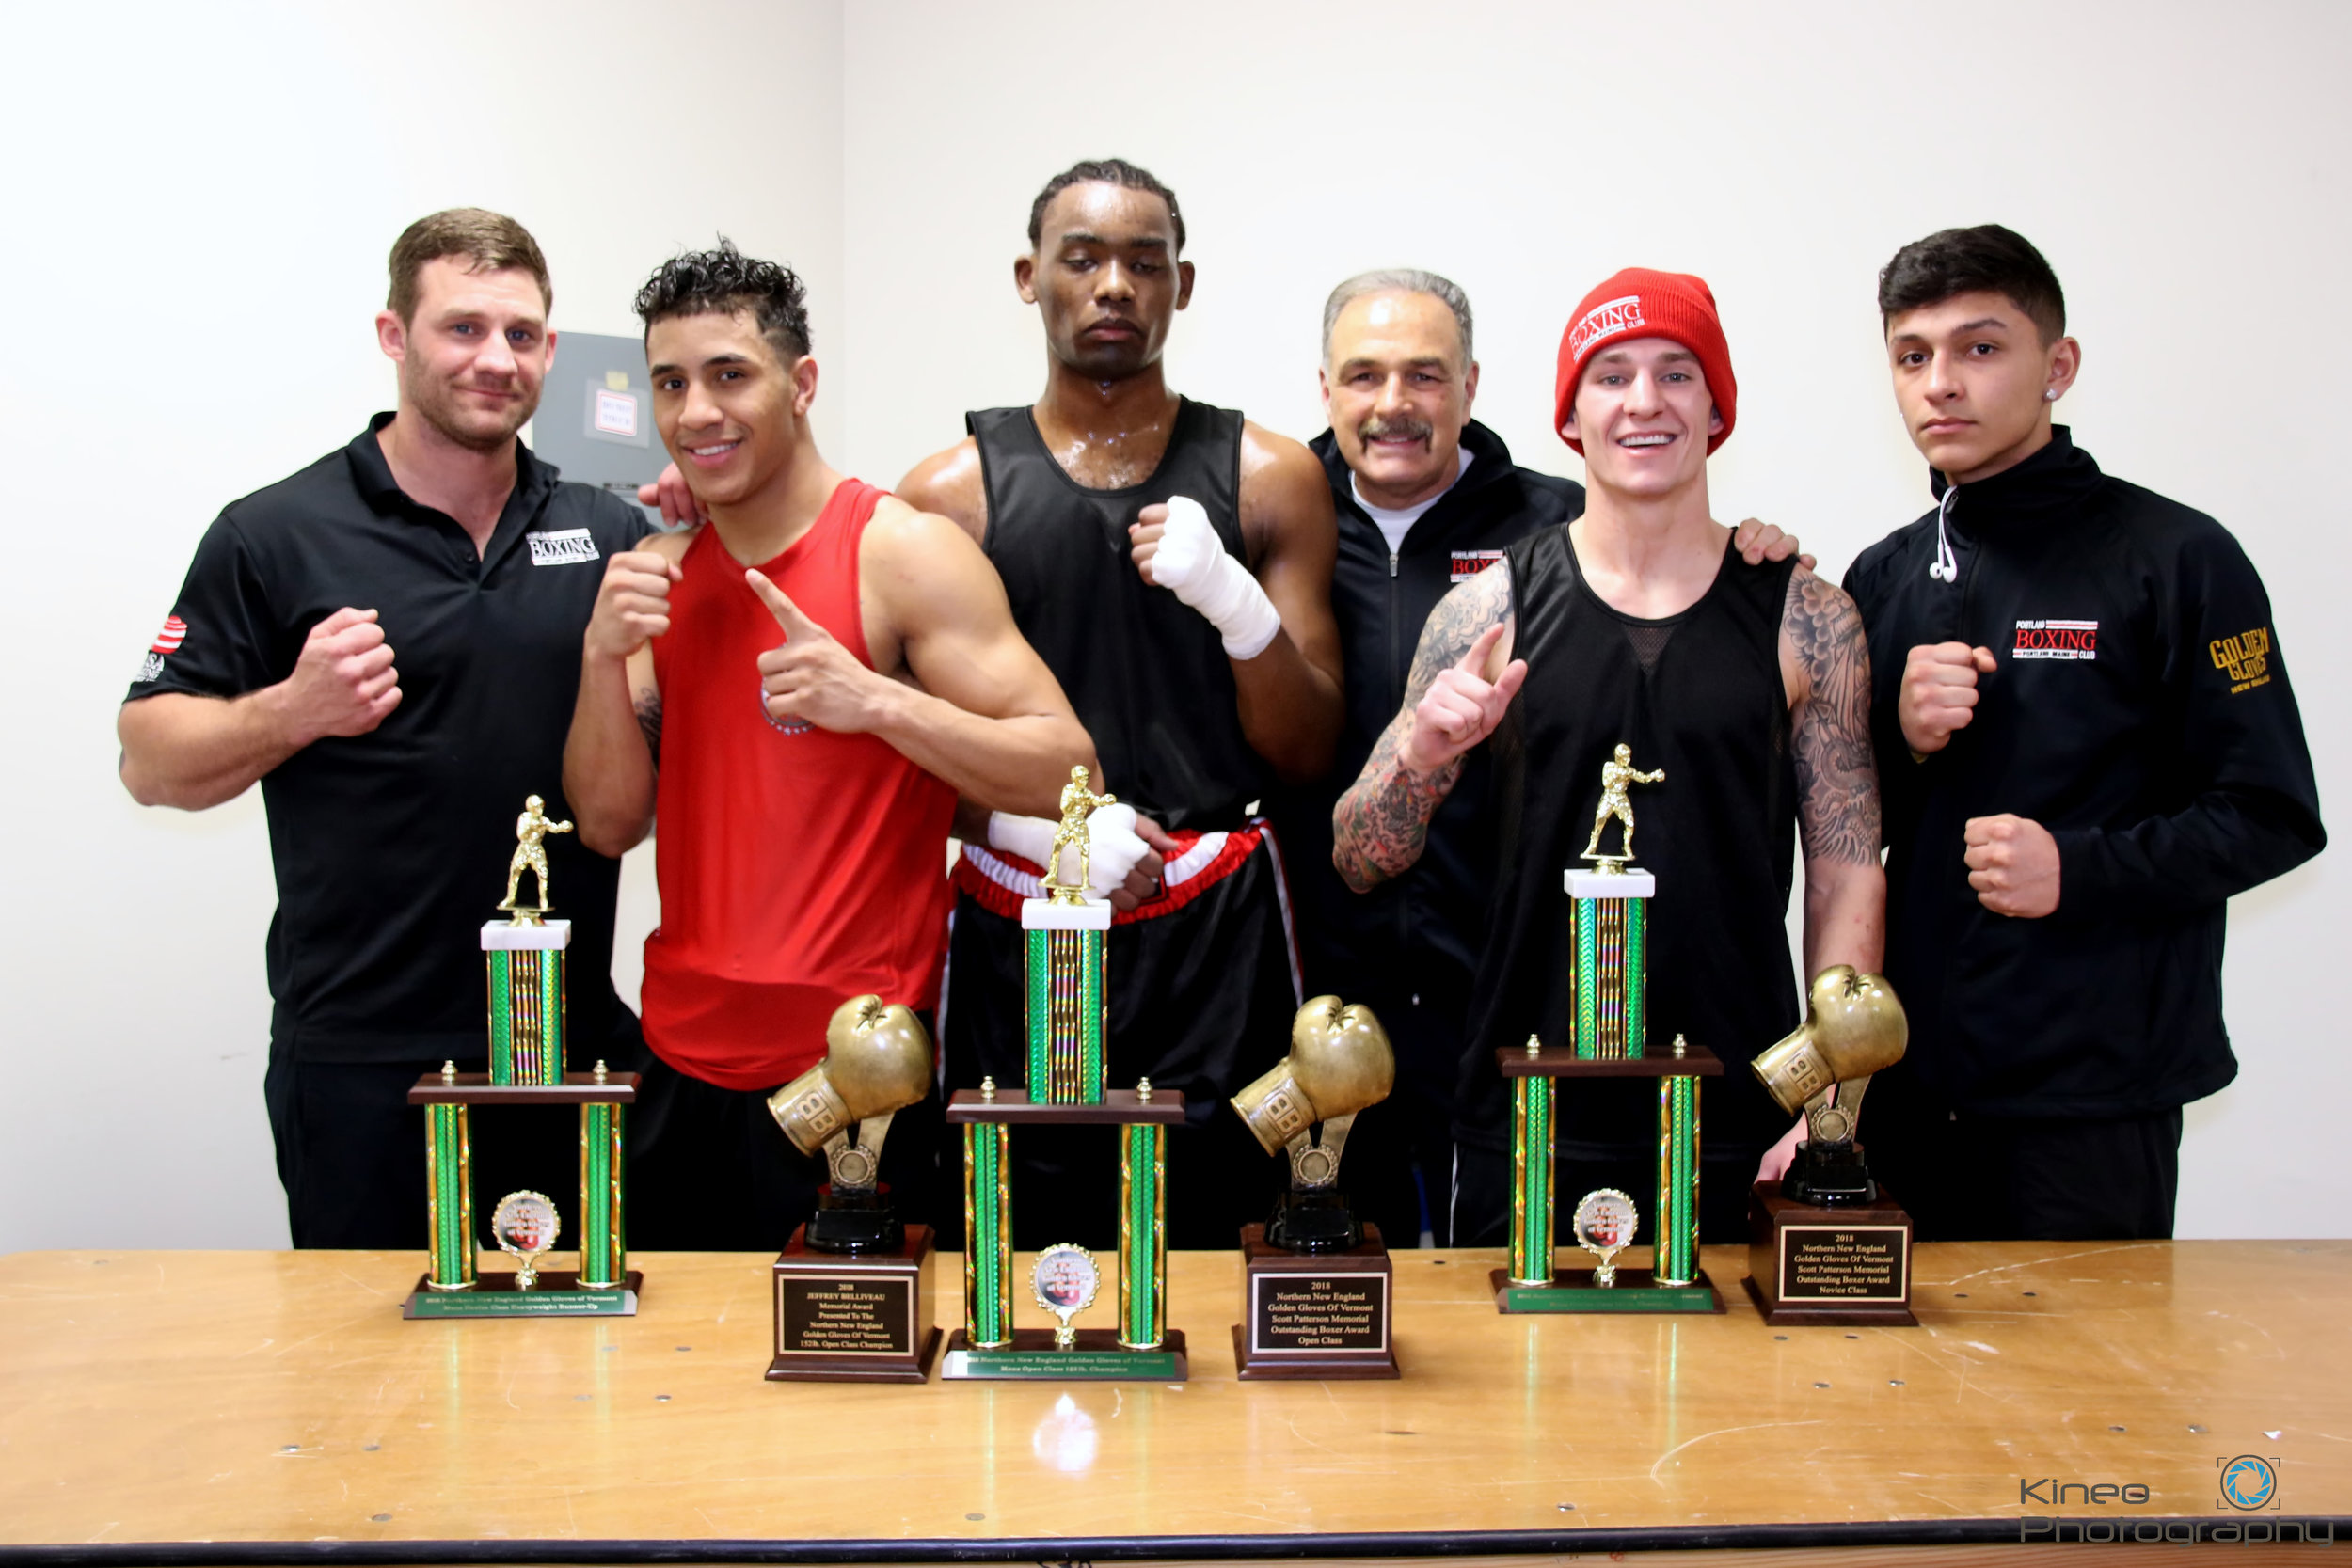 Portland Boxing Club's coach Ivan Papkee, welterweight Josniel Castro, heavyweight Mario Wilbor, head coach Bobby Russo, light welterweight Nathan Nappi and light welterweight Anthony Riga at the Northern New England Golden Gloves in Essex Jct., VT on February 3, 2018.